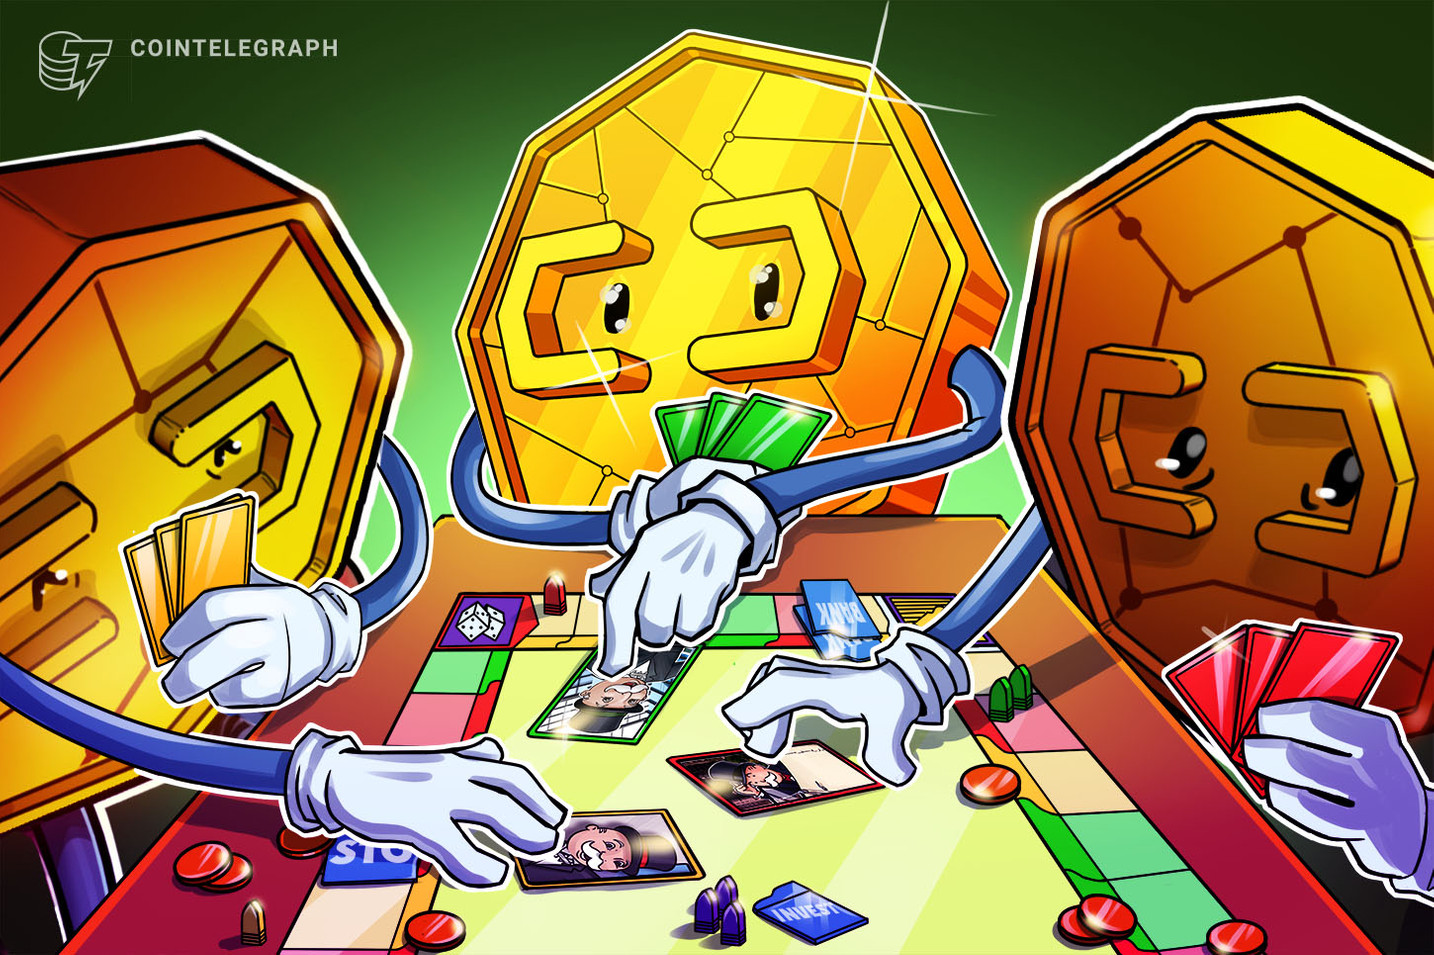 Fungible Tokens Turn Monopoly Money Into Cryptocurrency